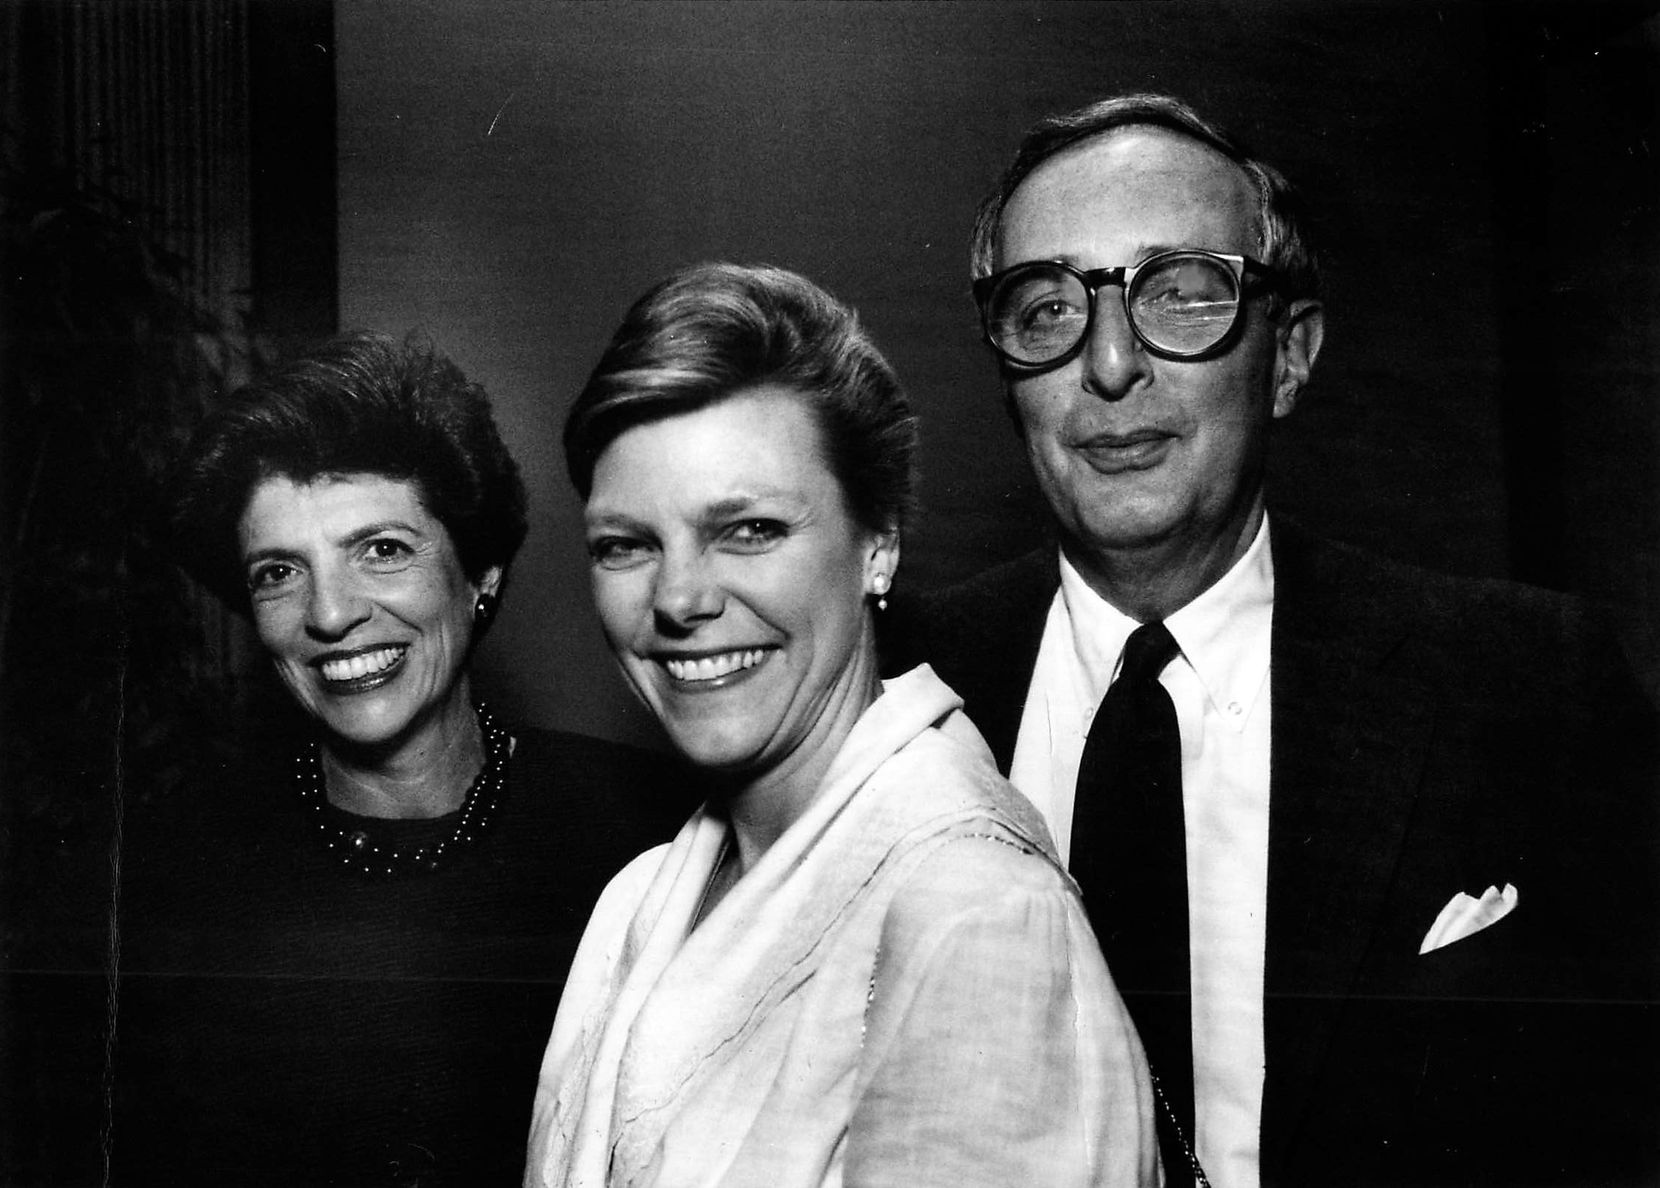 Carolyn Horchow, journalist Cokie Roberts and Roger Horchow in Dallas in 1989. (Cindy Yamanaka/Staff Photographer)